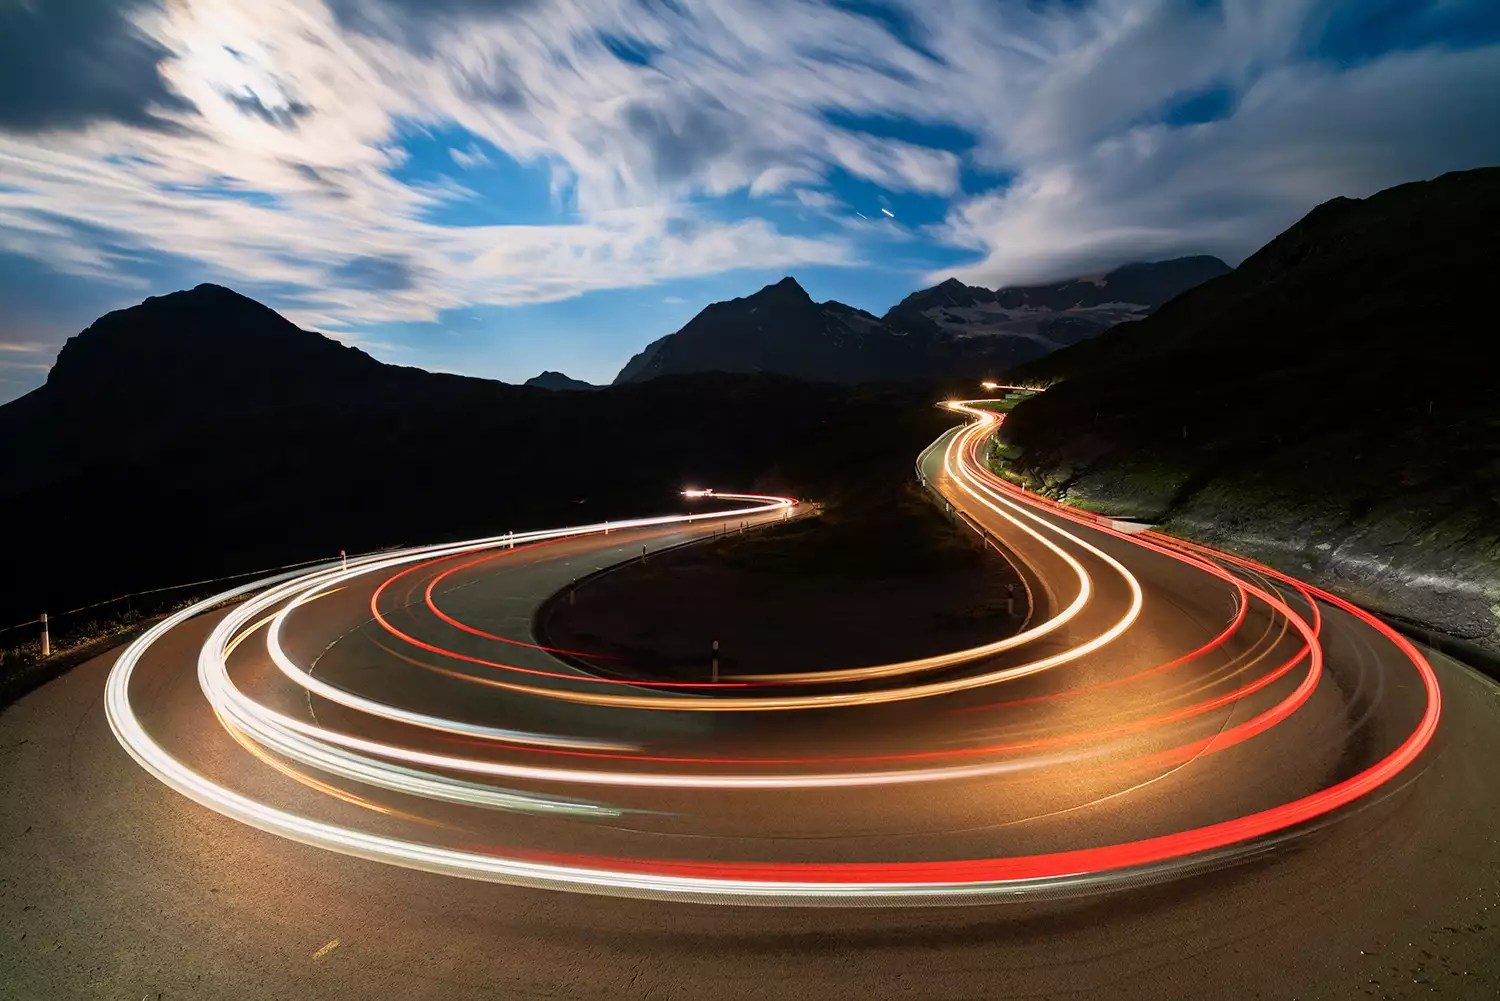 Car lights, Bernina Pass, Switzerland - The Internet Tips